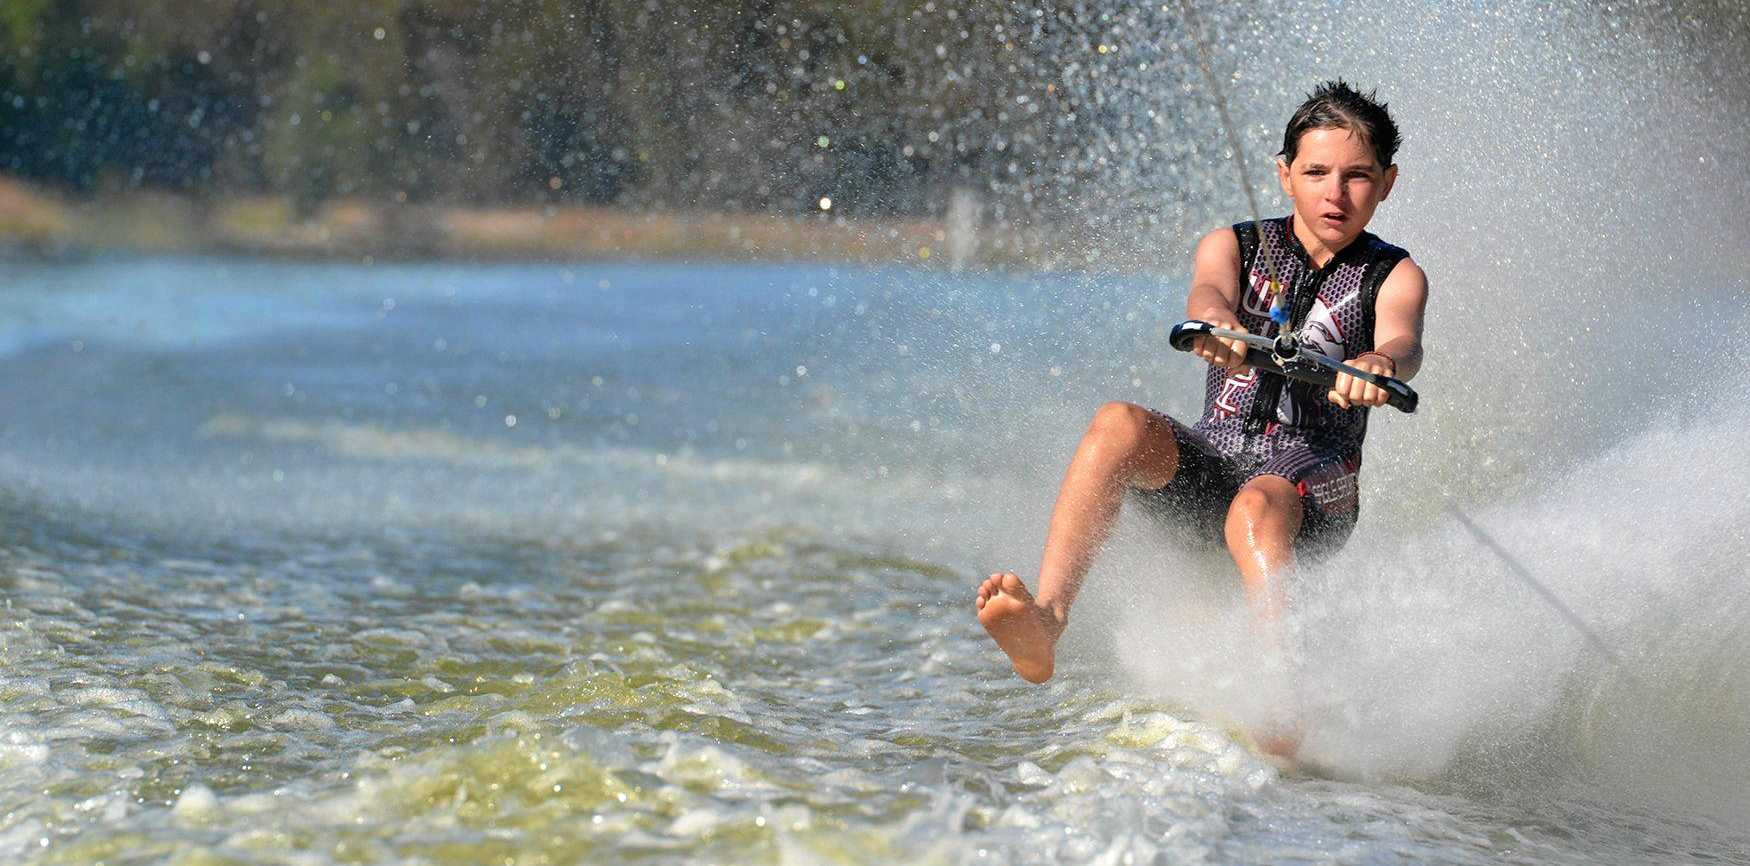 TALENT: Gladstone and District Sports Foundation Trust recipient, Ben Press, shows his style at the 2017 National Barefoot Water-skiing Championships.